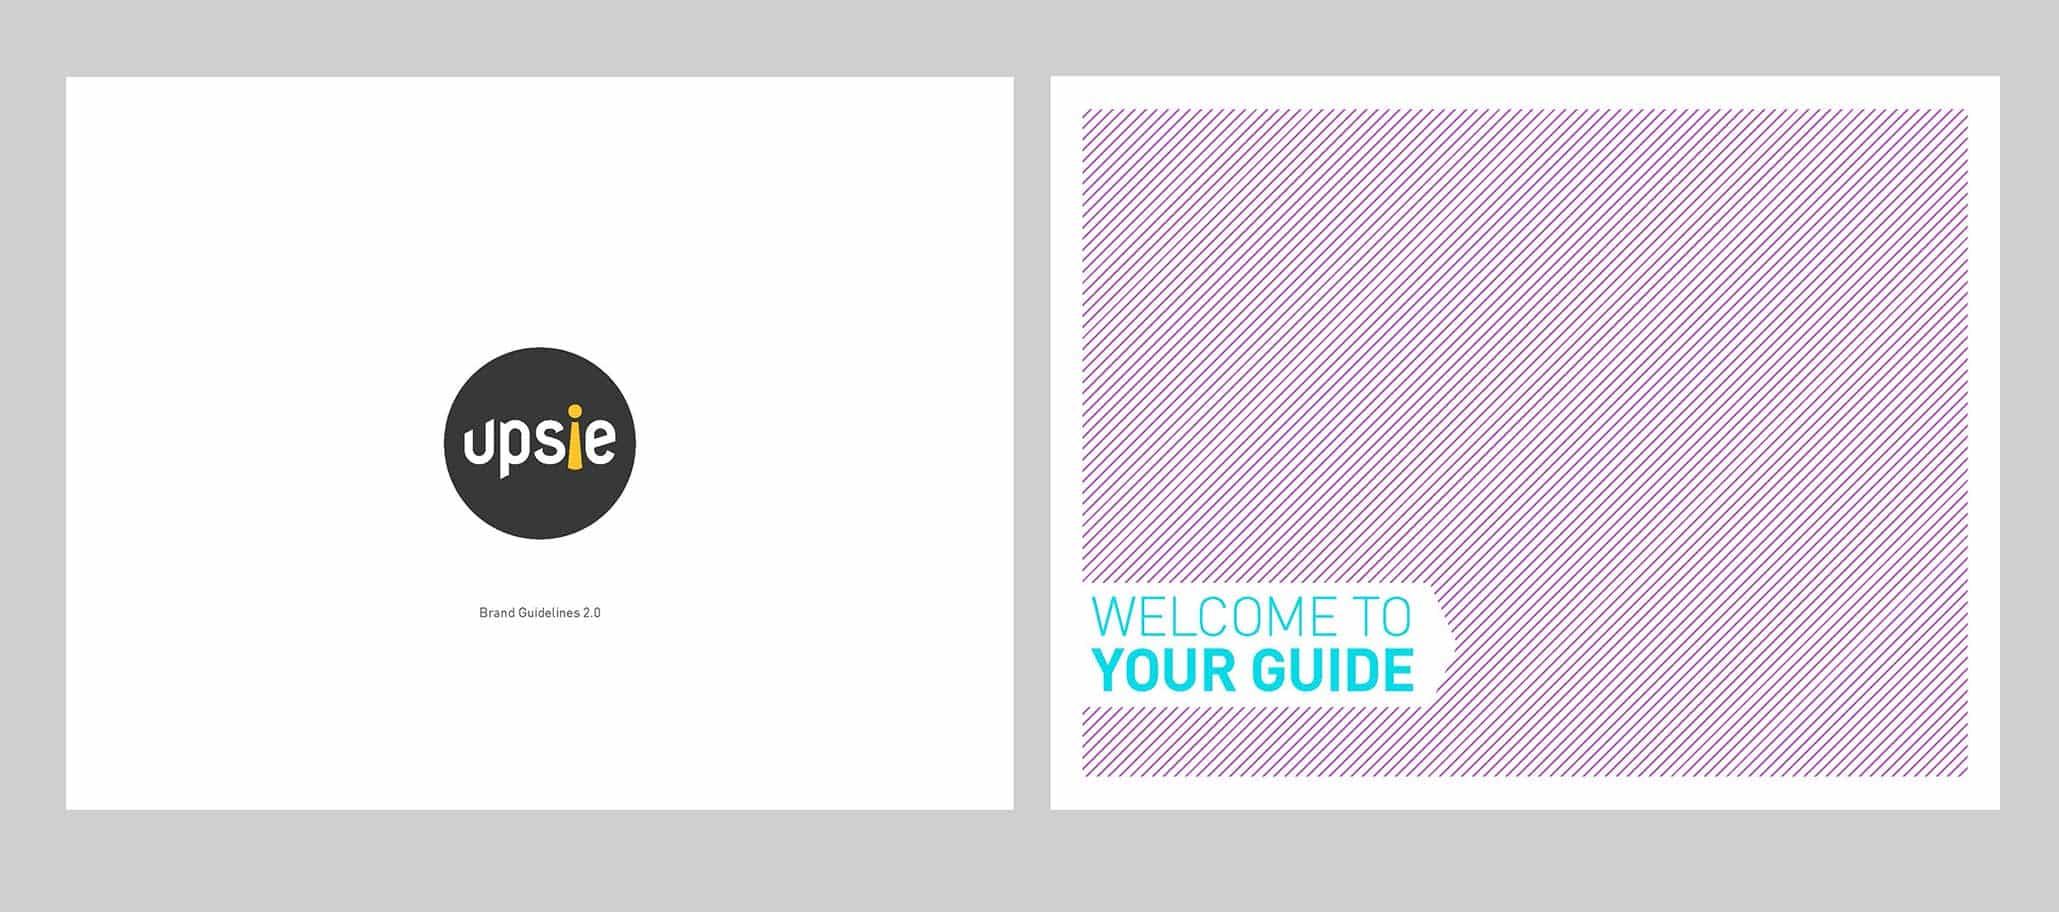 Upsie Brand Guidelines Cover and Welcome Pages